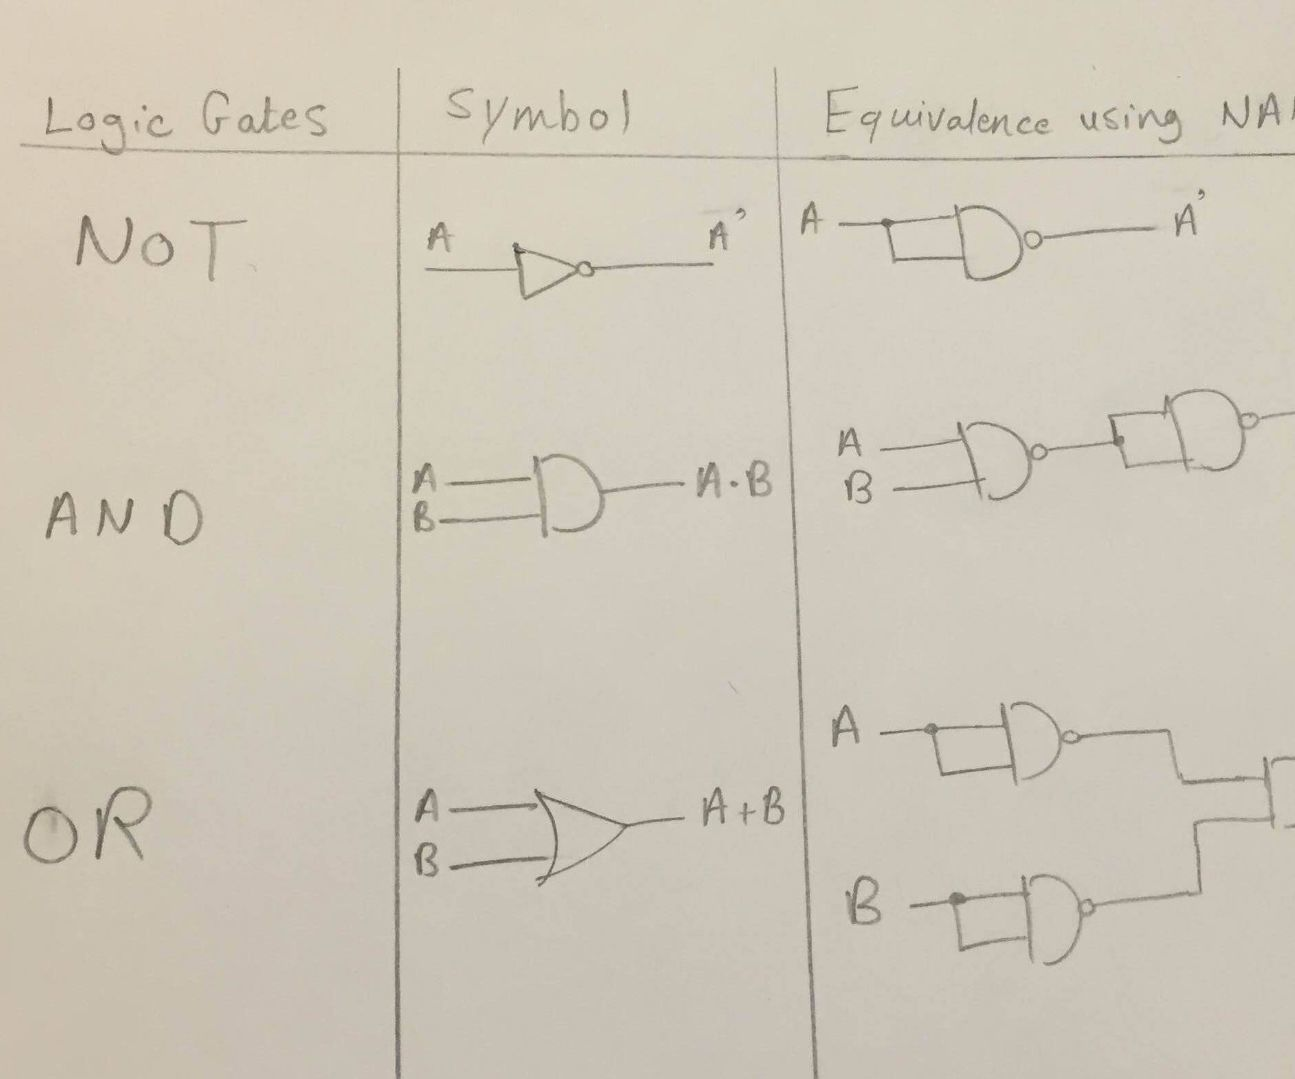 Not And Or Gates Using Nand 4 Steps With Pictures Logic Diagram